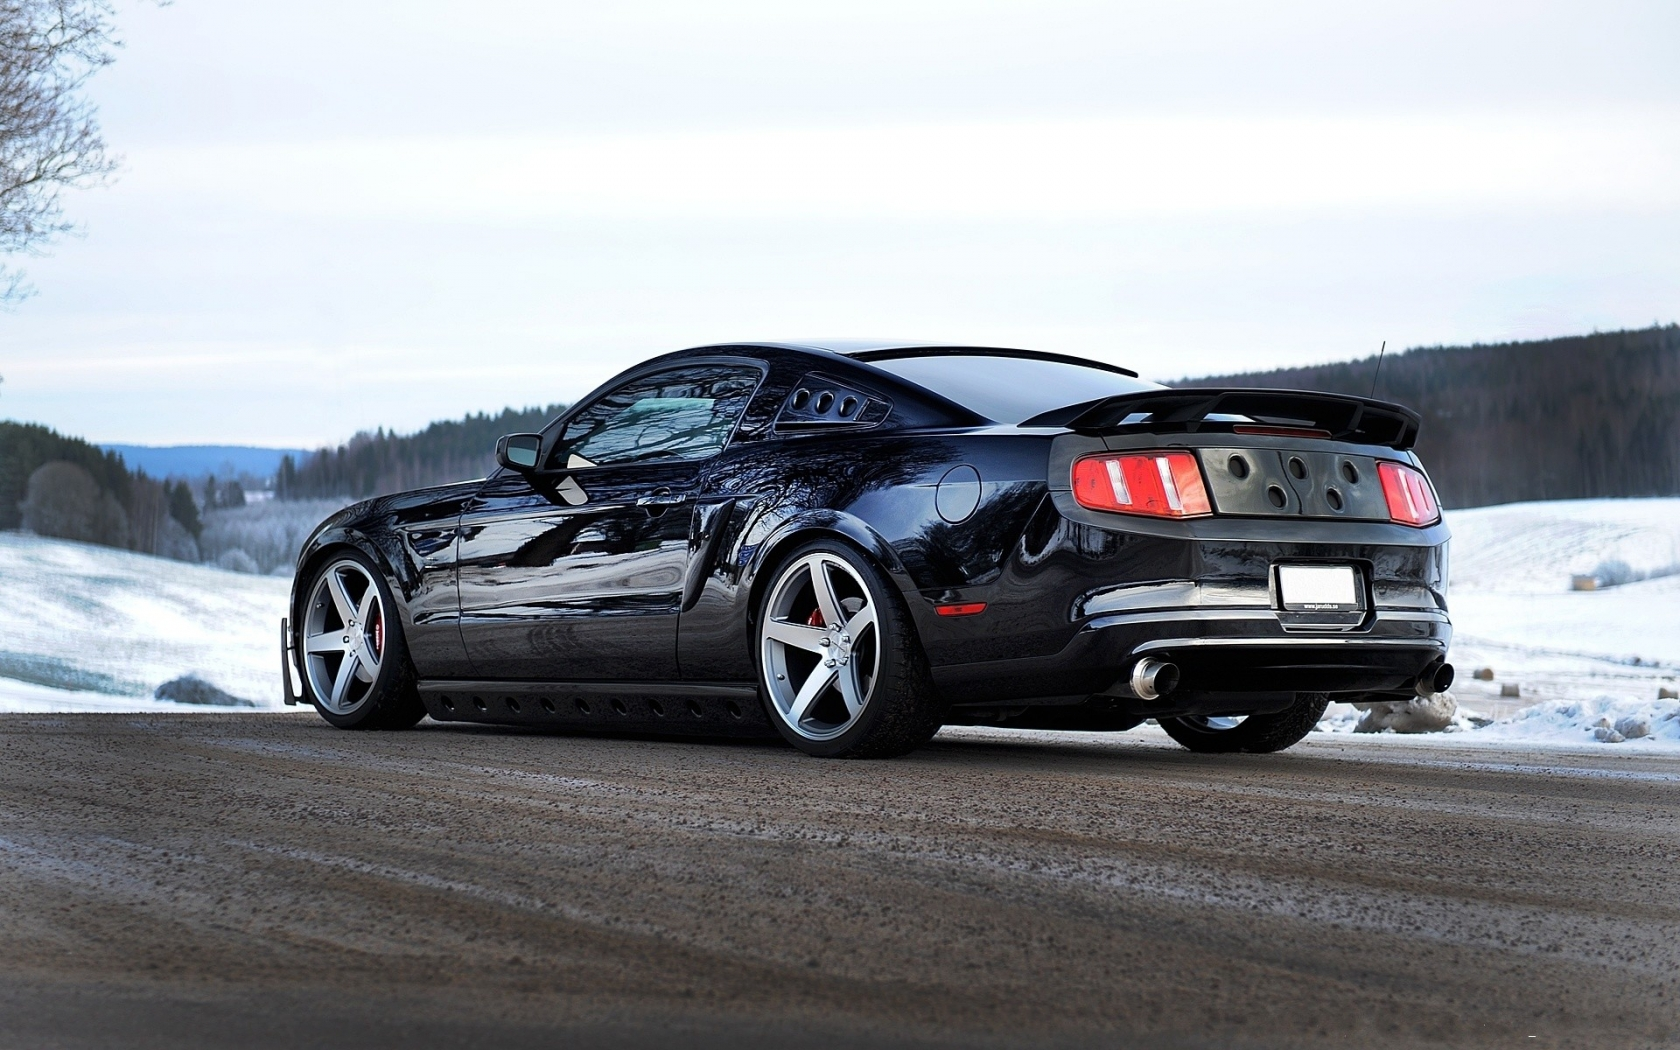 Ford Mustang GT 2013 - 1680x1050